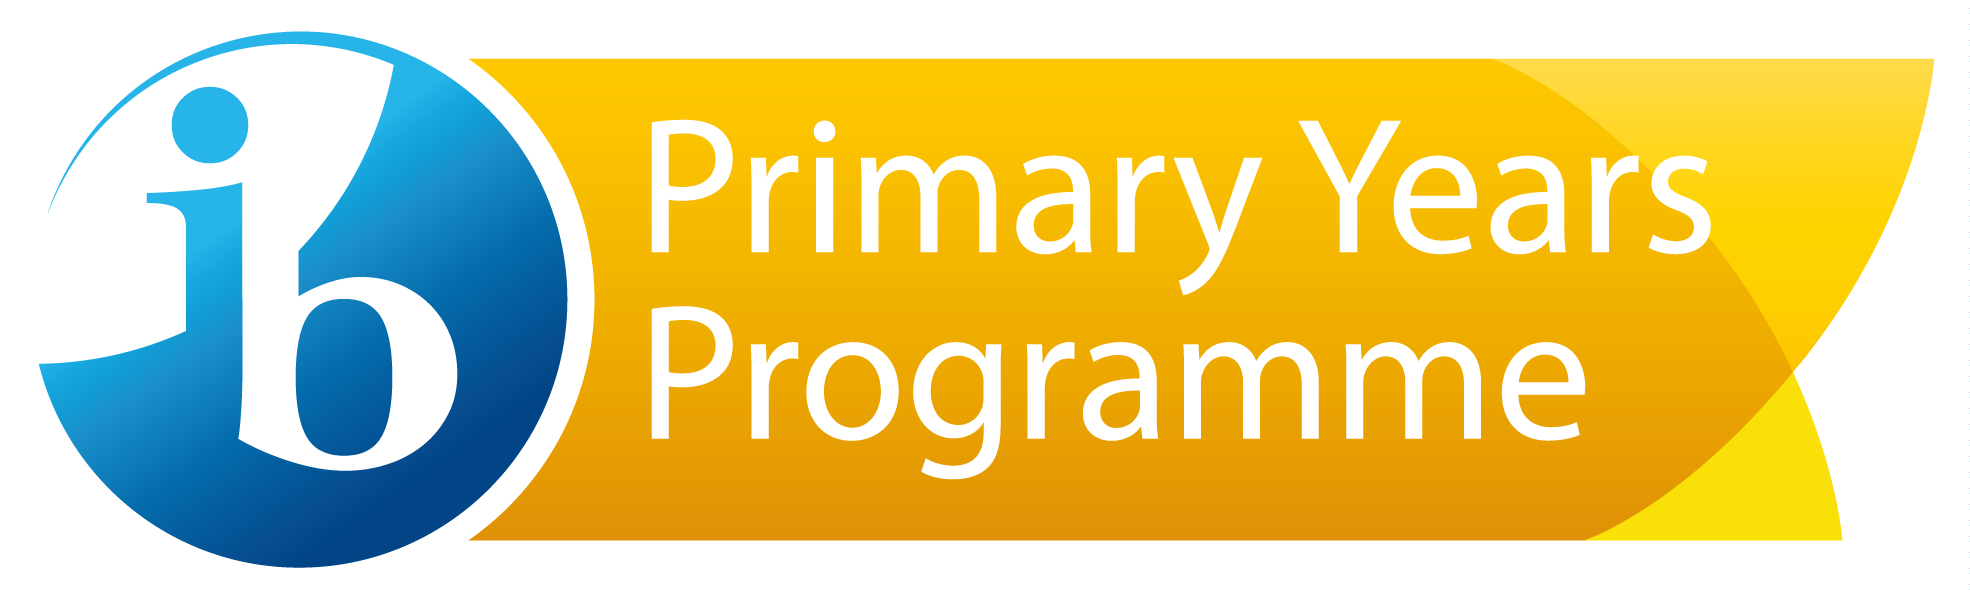 IB World School Primary Years Programme logo